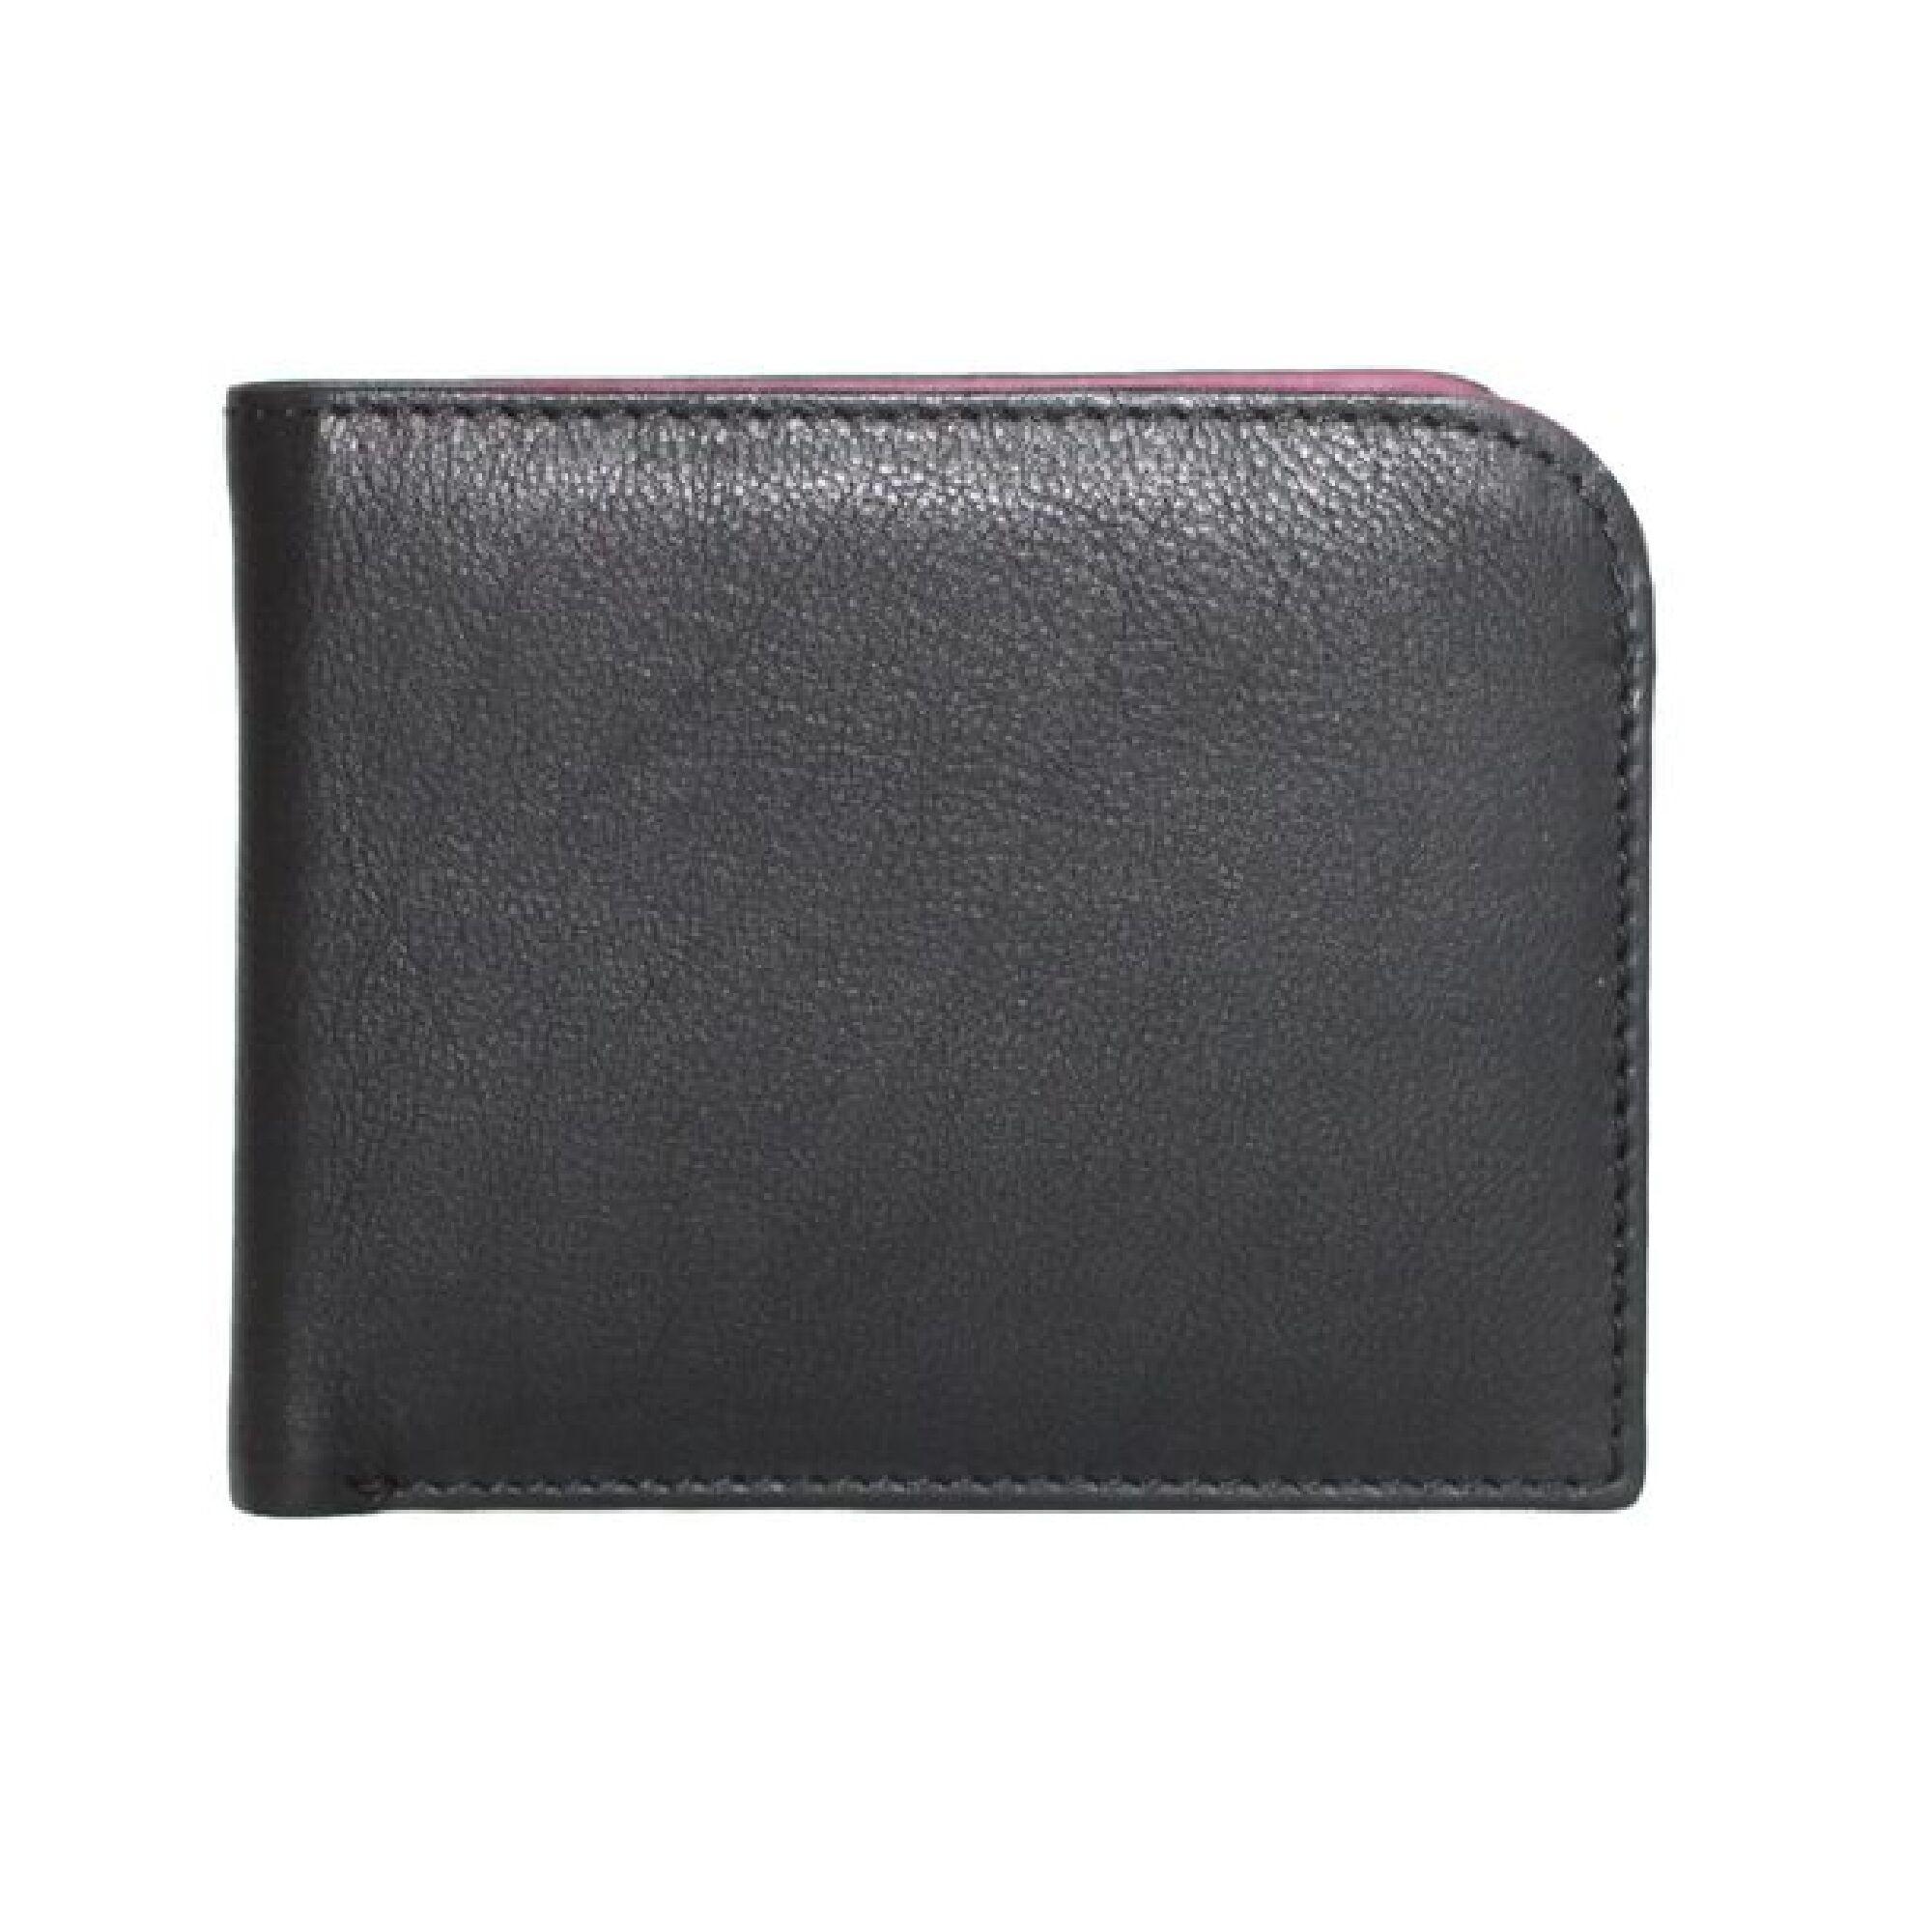 Eastern Counties Leather - Portefeuille Arlen En Cuir - Homme (Noir/ Bordeaux) - UTEL111